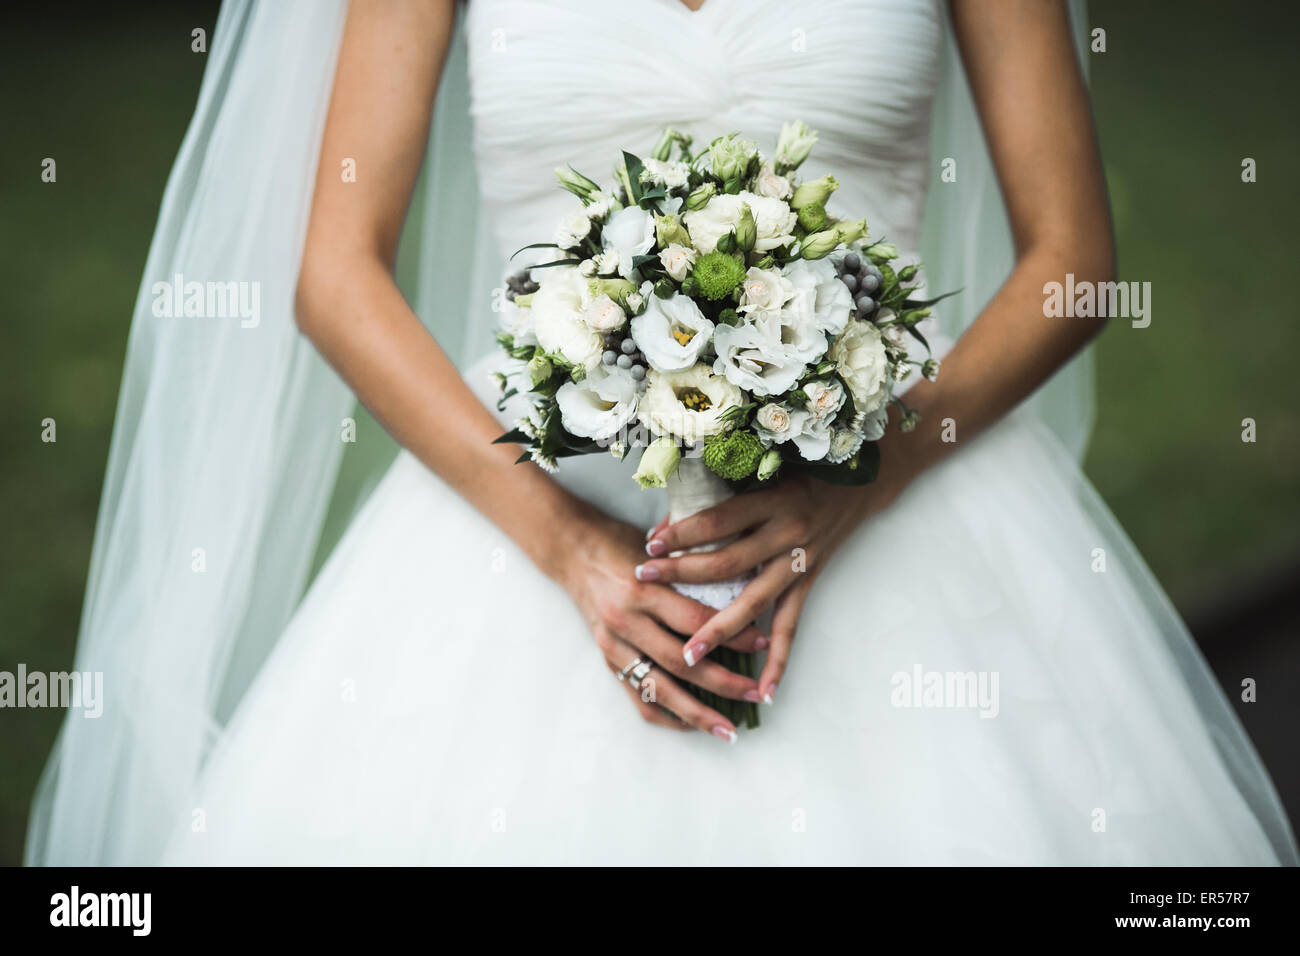 Very beautiful wedding bouquet - Stock Image